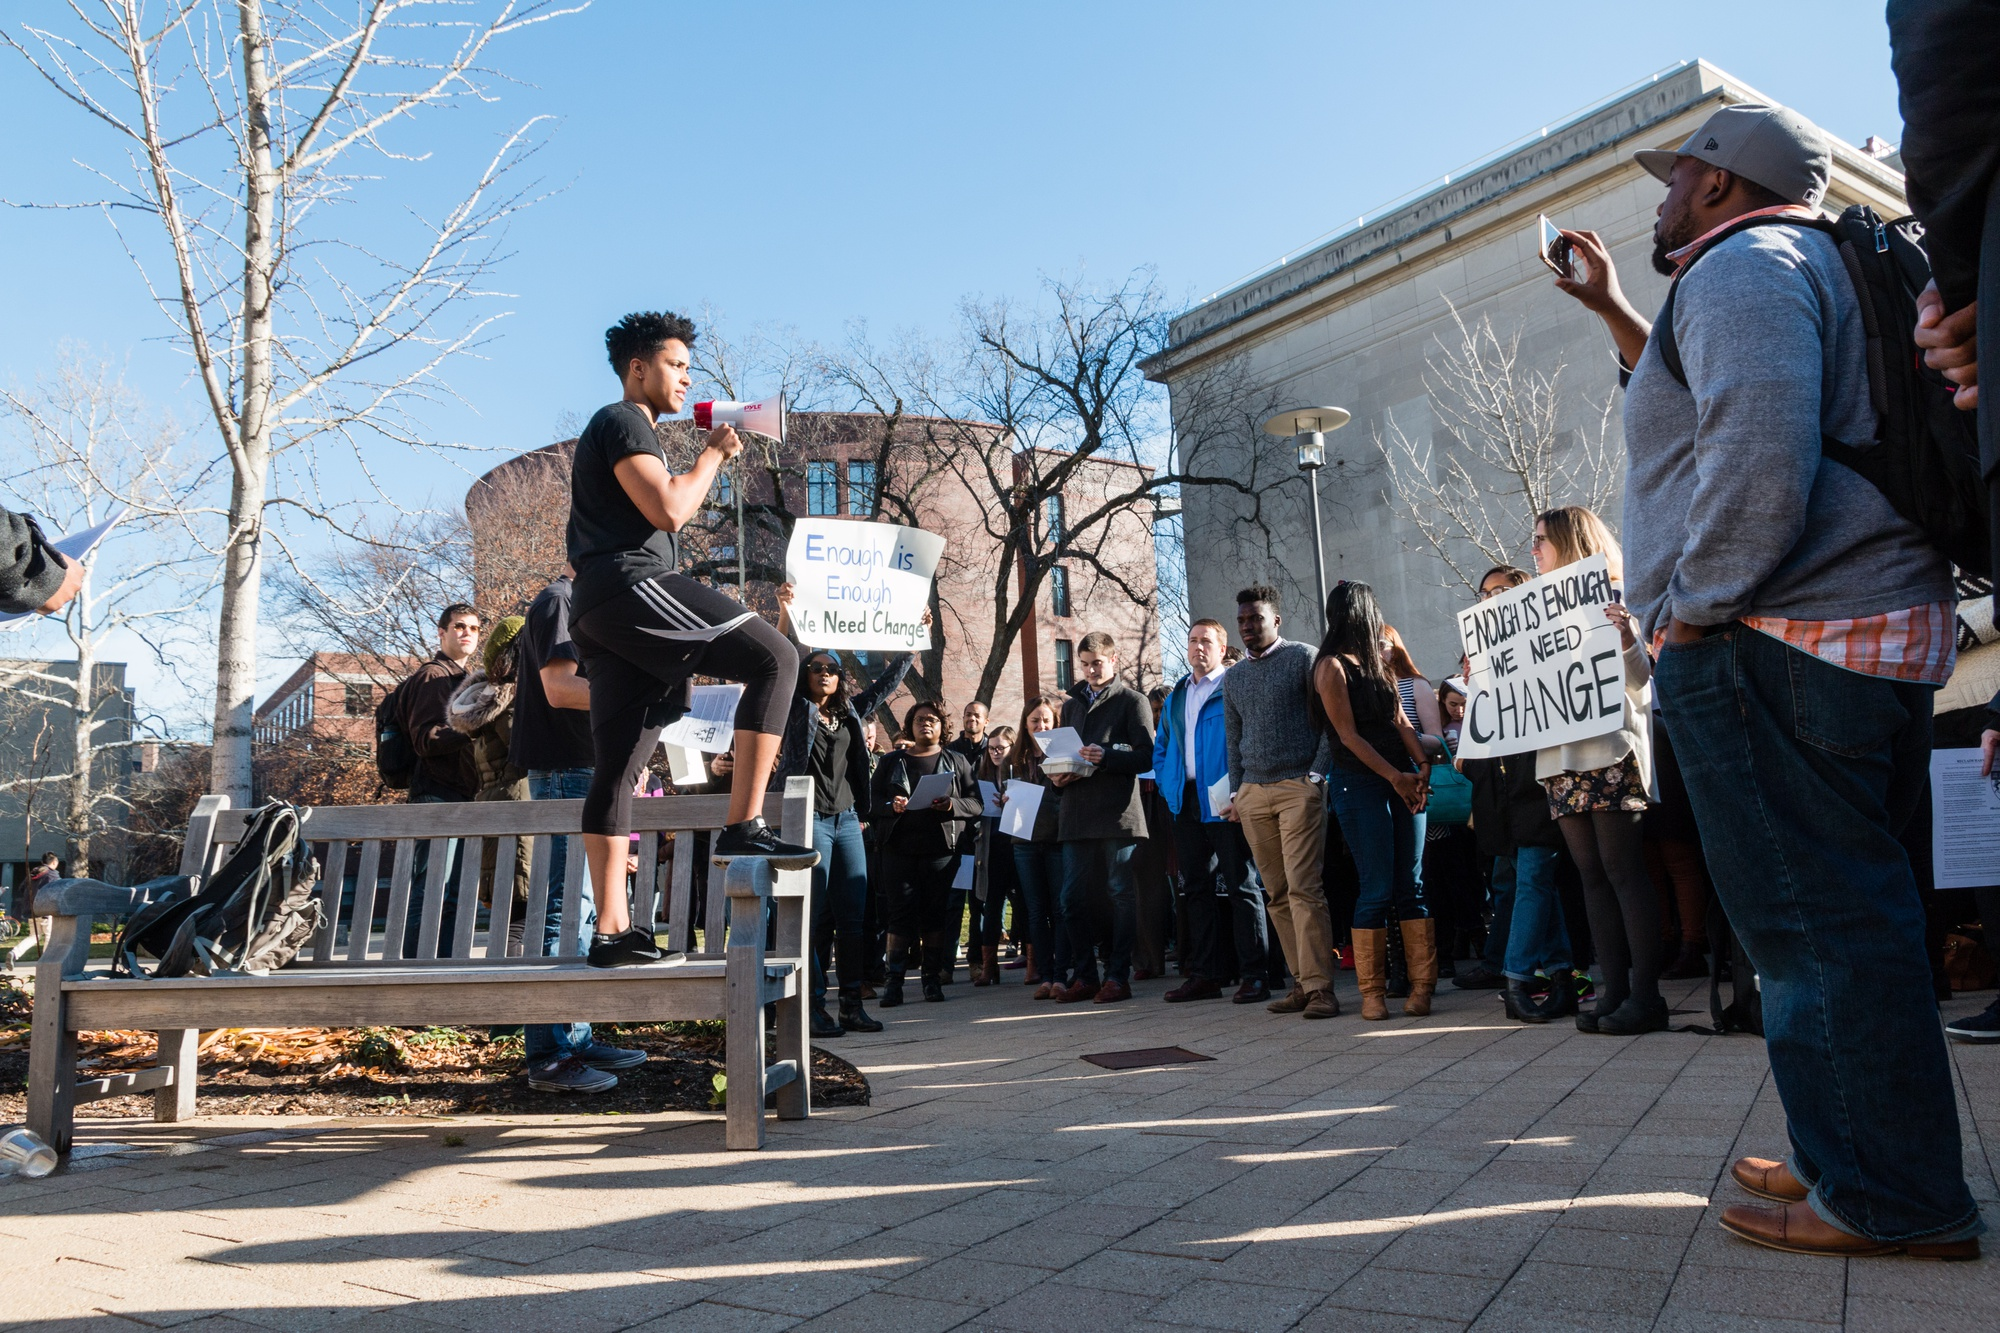 Harvard Law School student activists held a solidarity rally at Kumble Plaza on Monday afternoon. Law School Dean Martha L. Minow has yet to publicize a plan to implement student demands brought up during a community meeting last Friday.